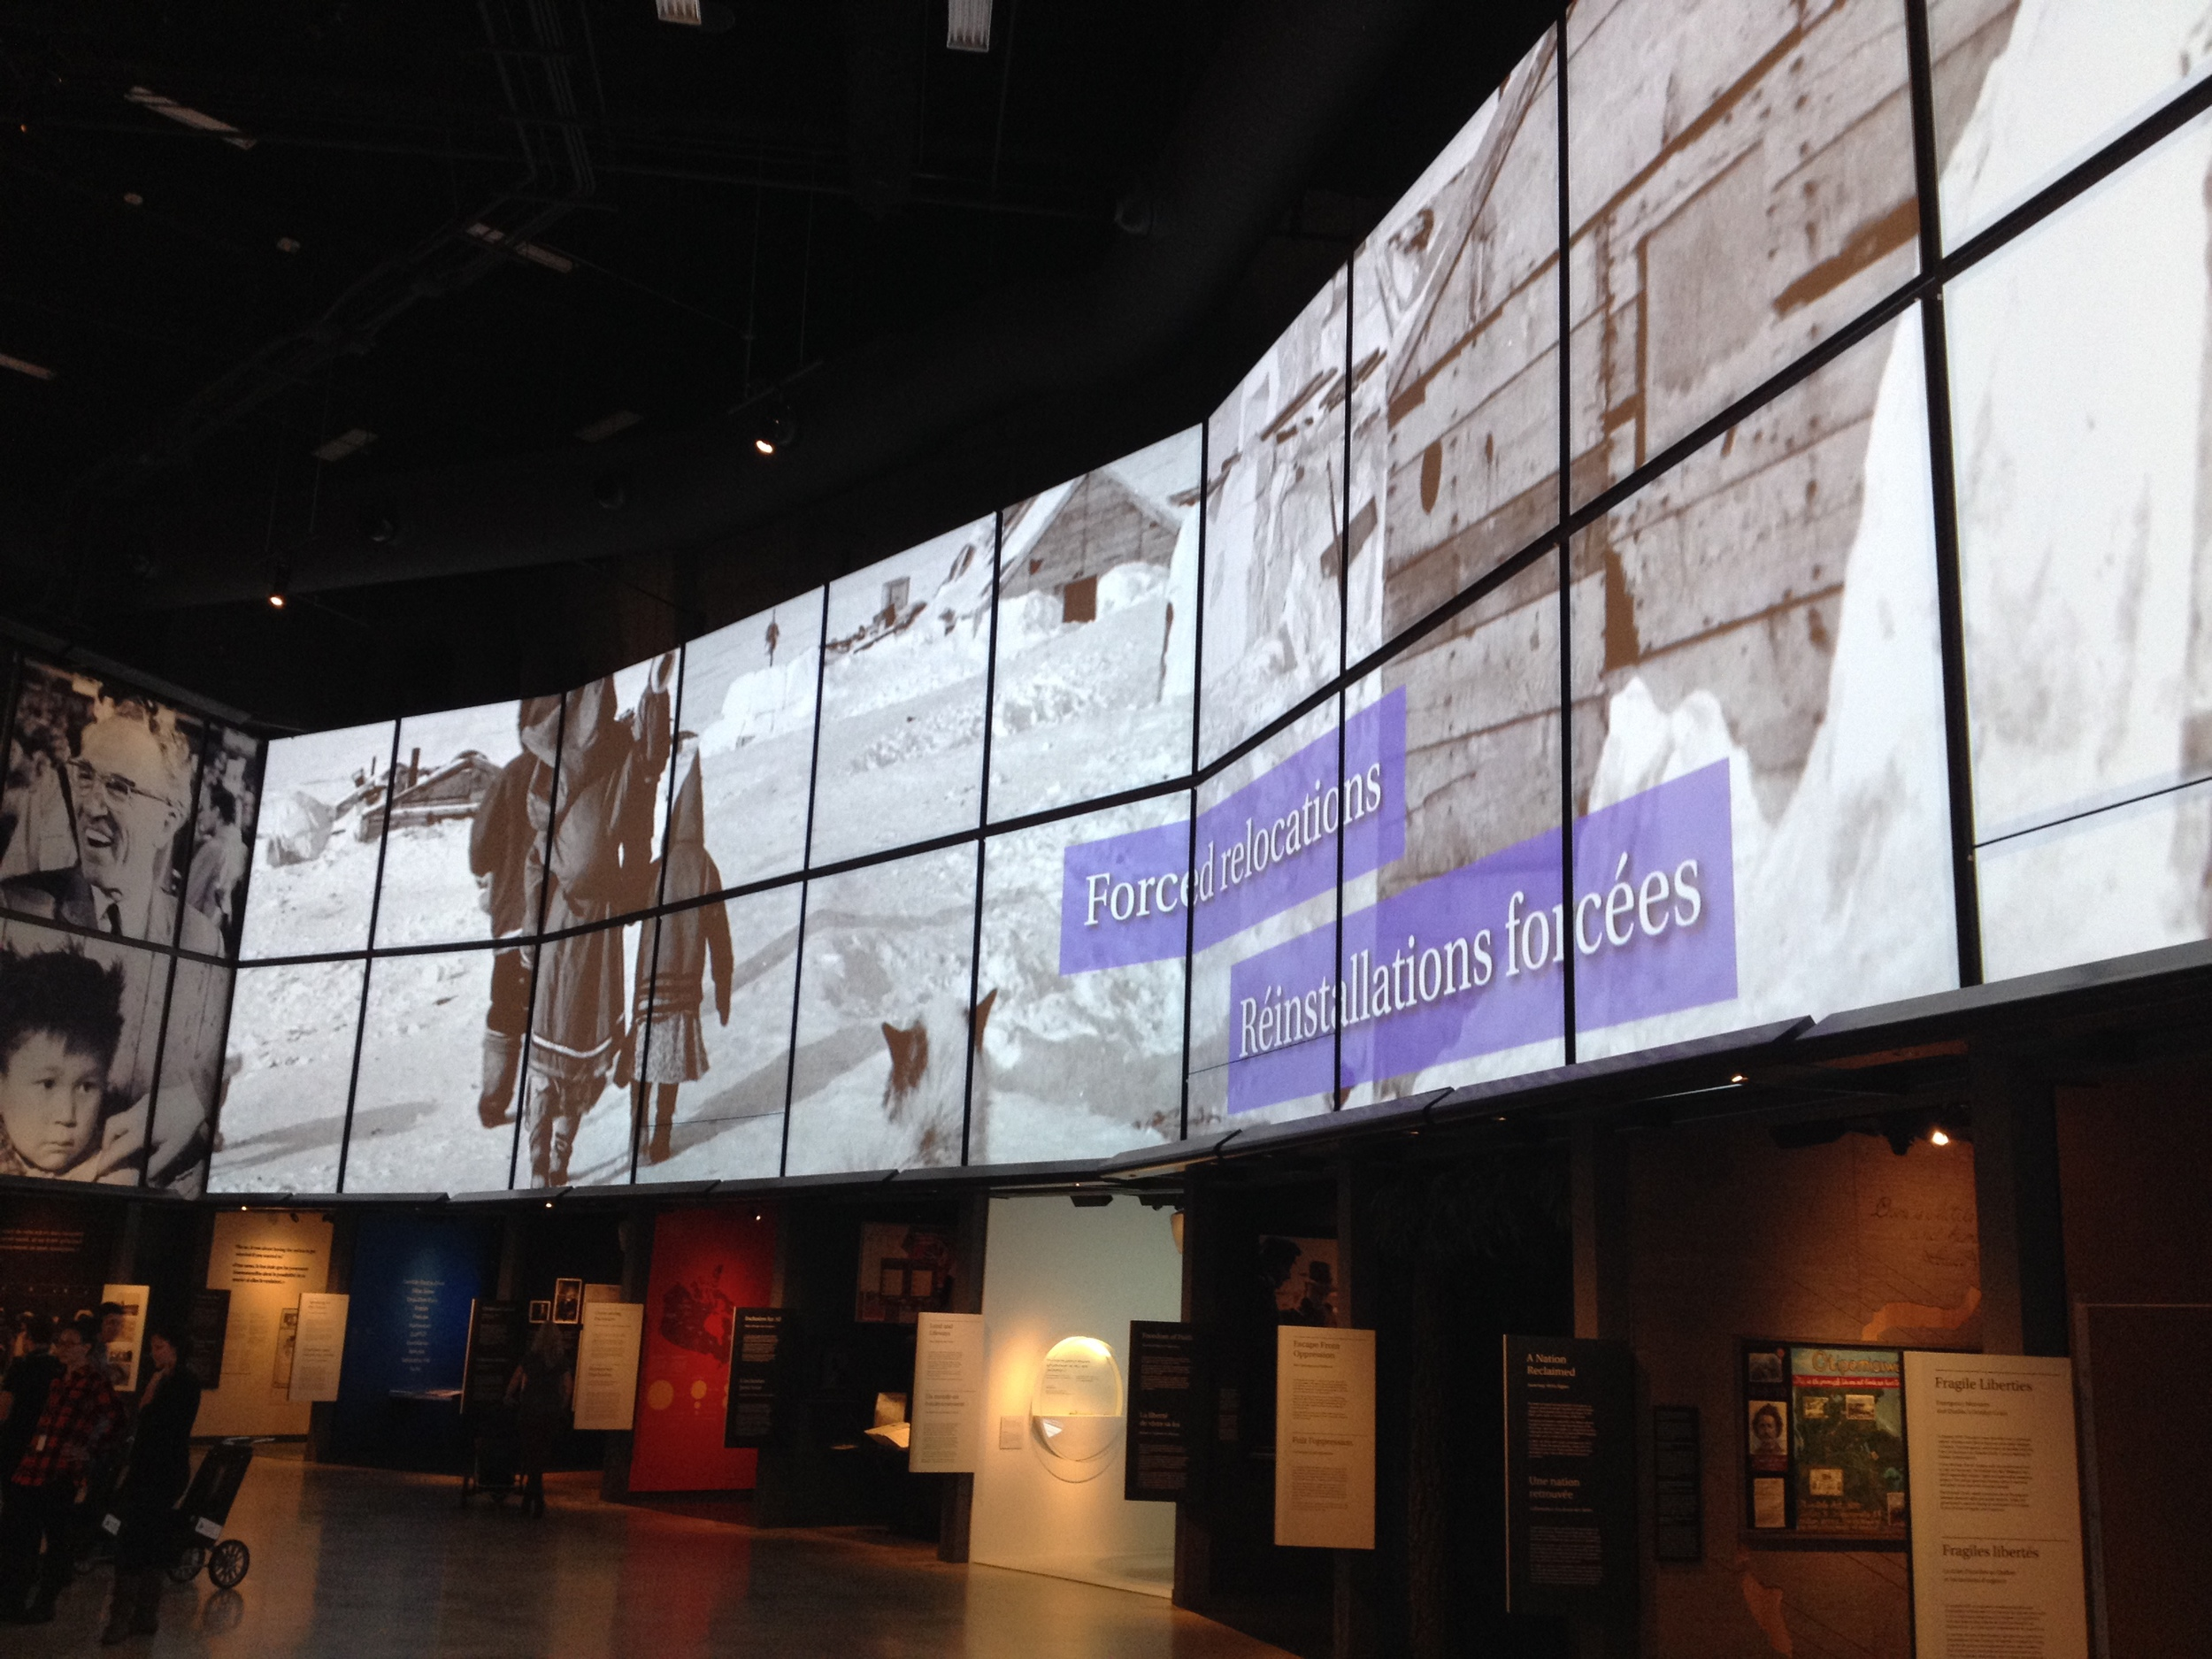 Several of the exhibition halls are dominated by a large billboard like video screen with words and images.